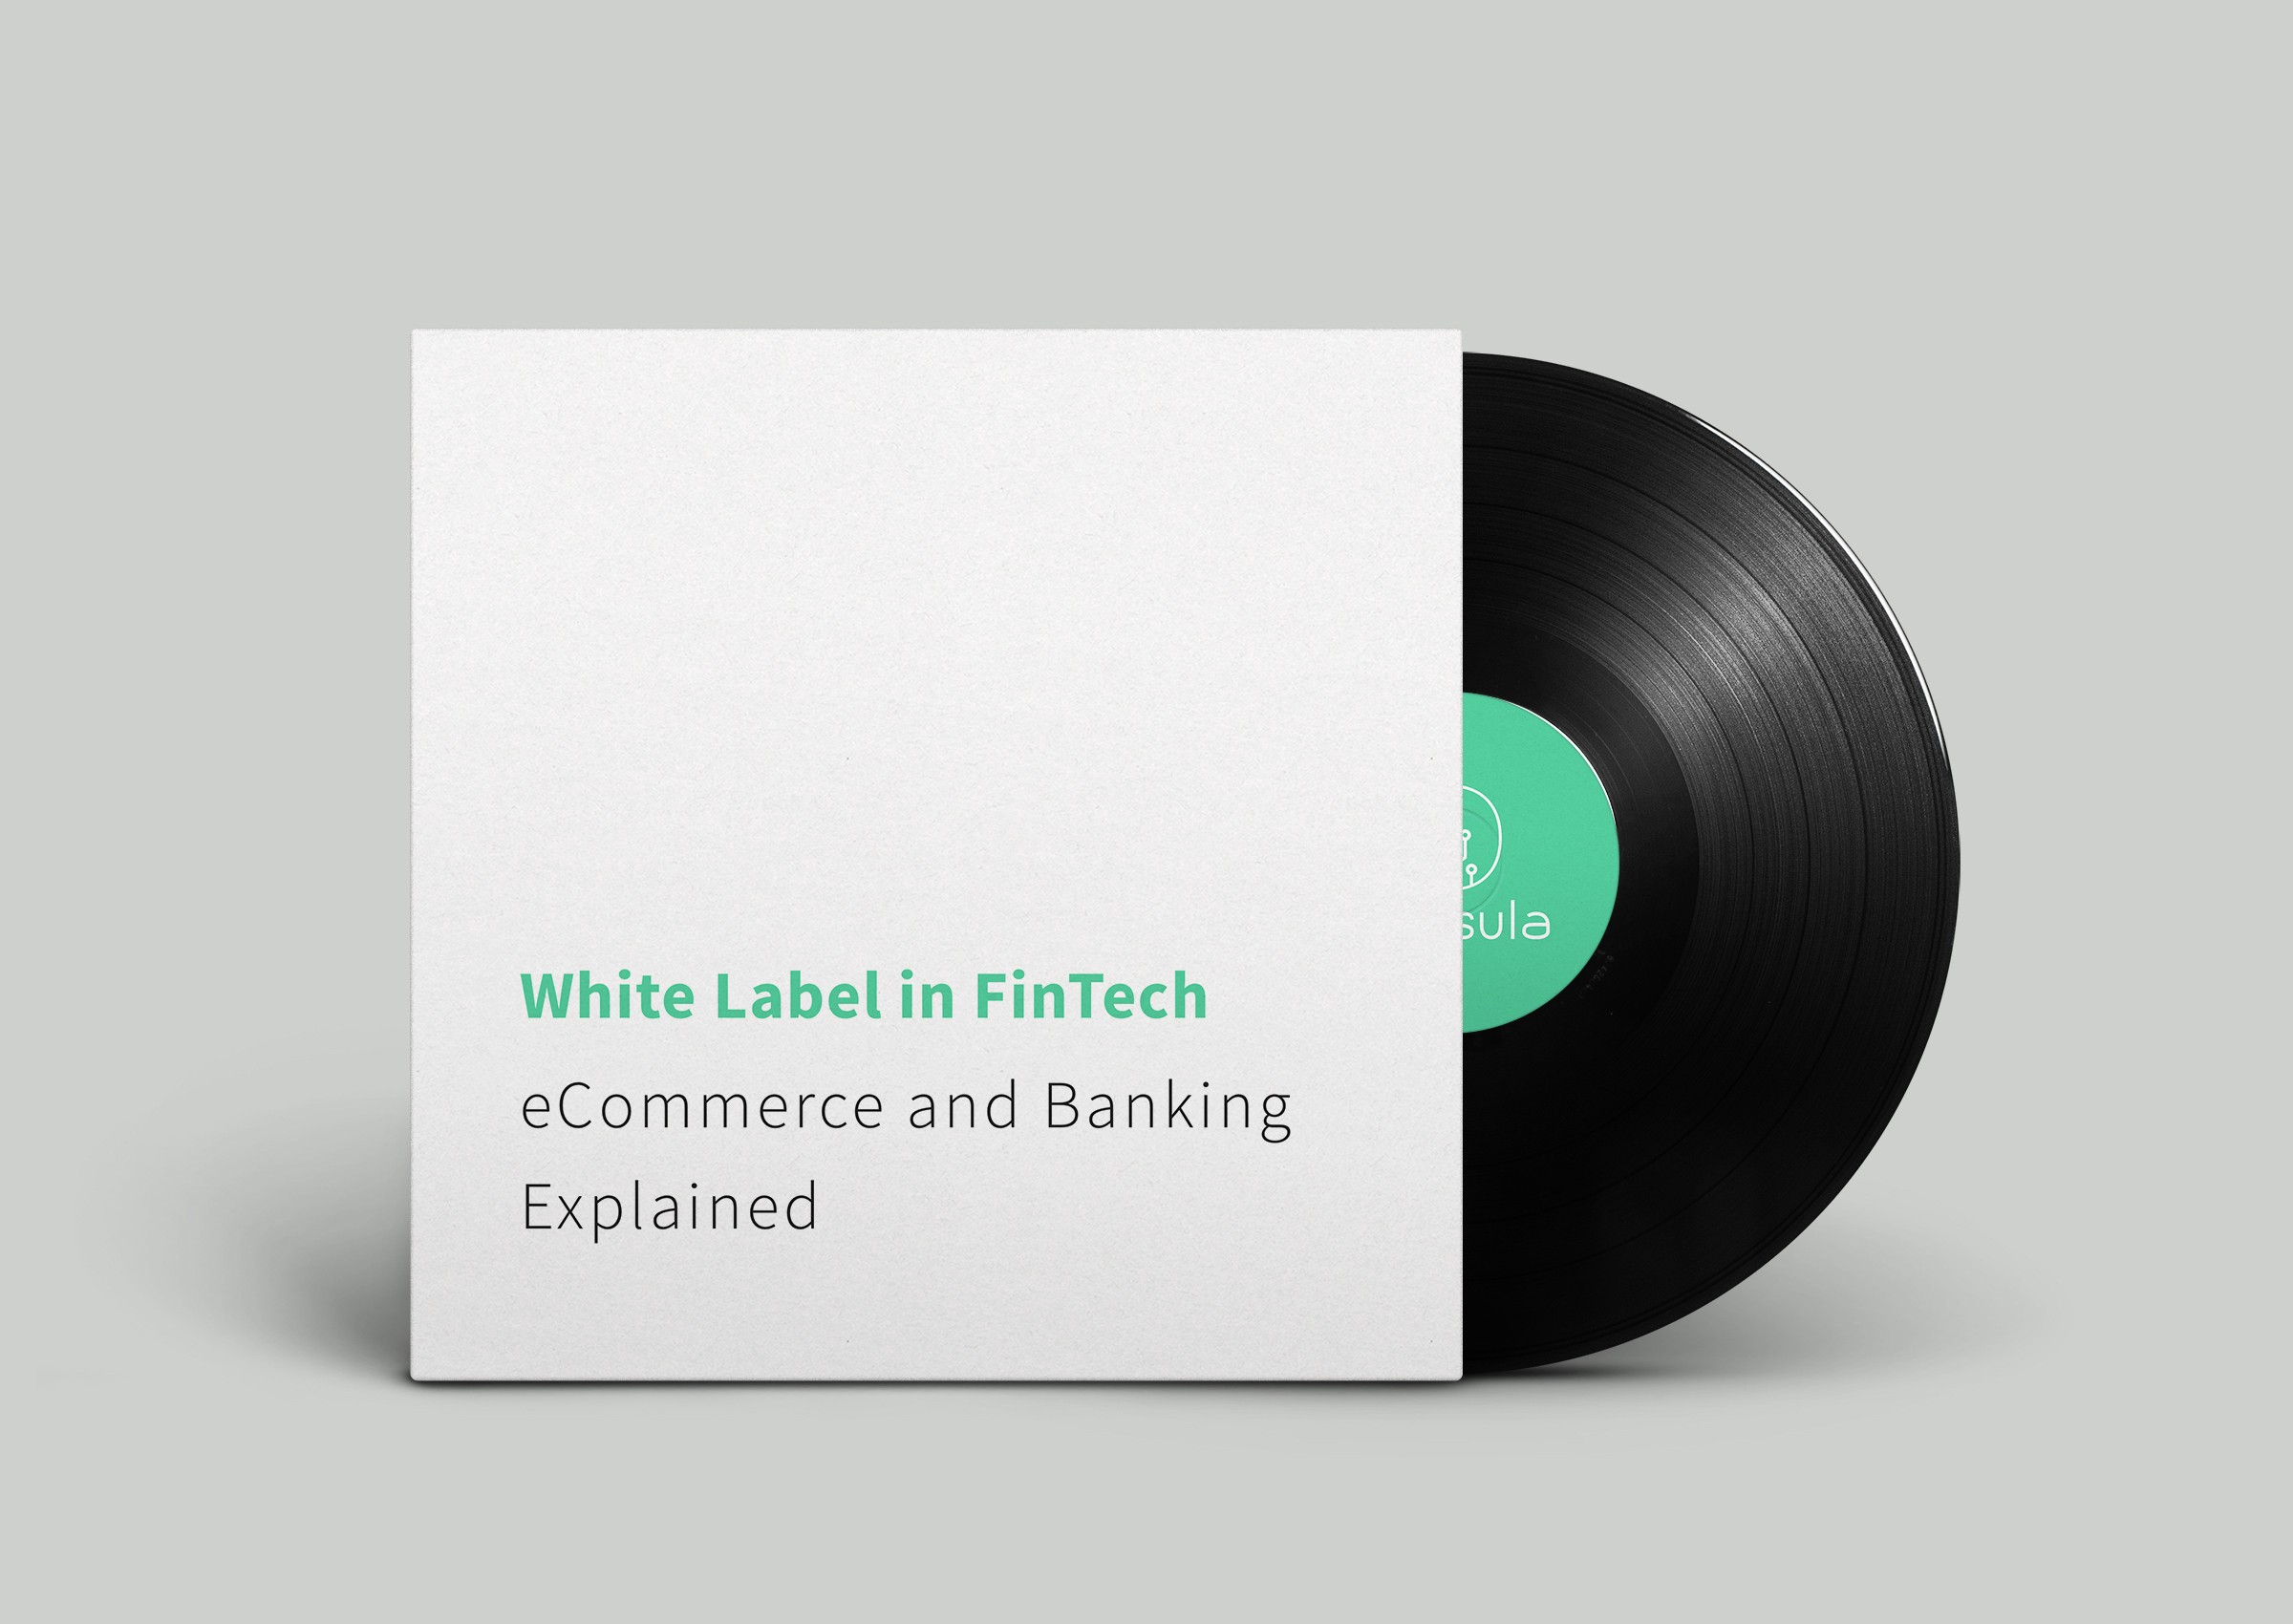 White Label in FinTech: eCommerce and Banking Explained